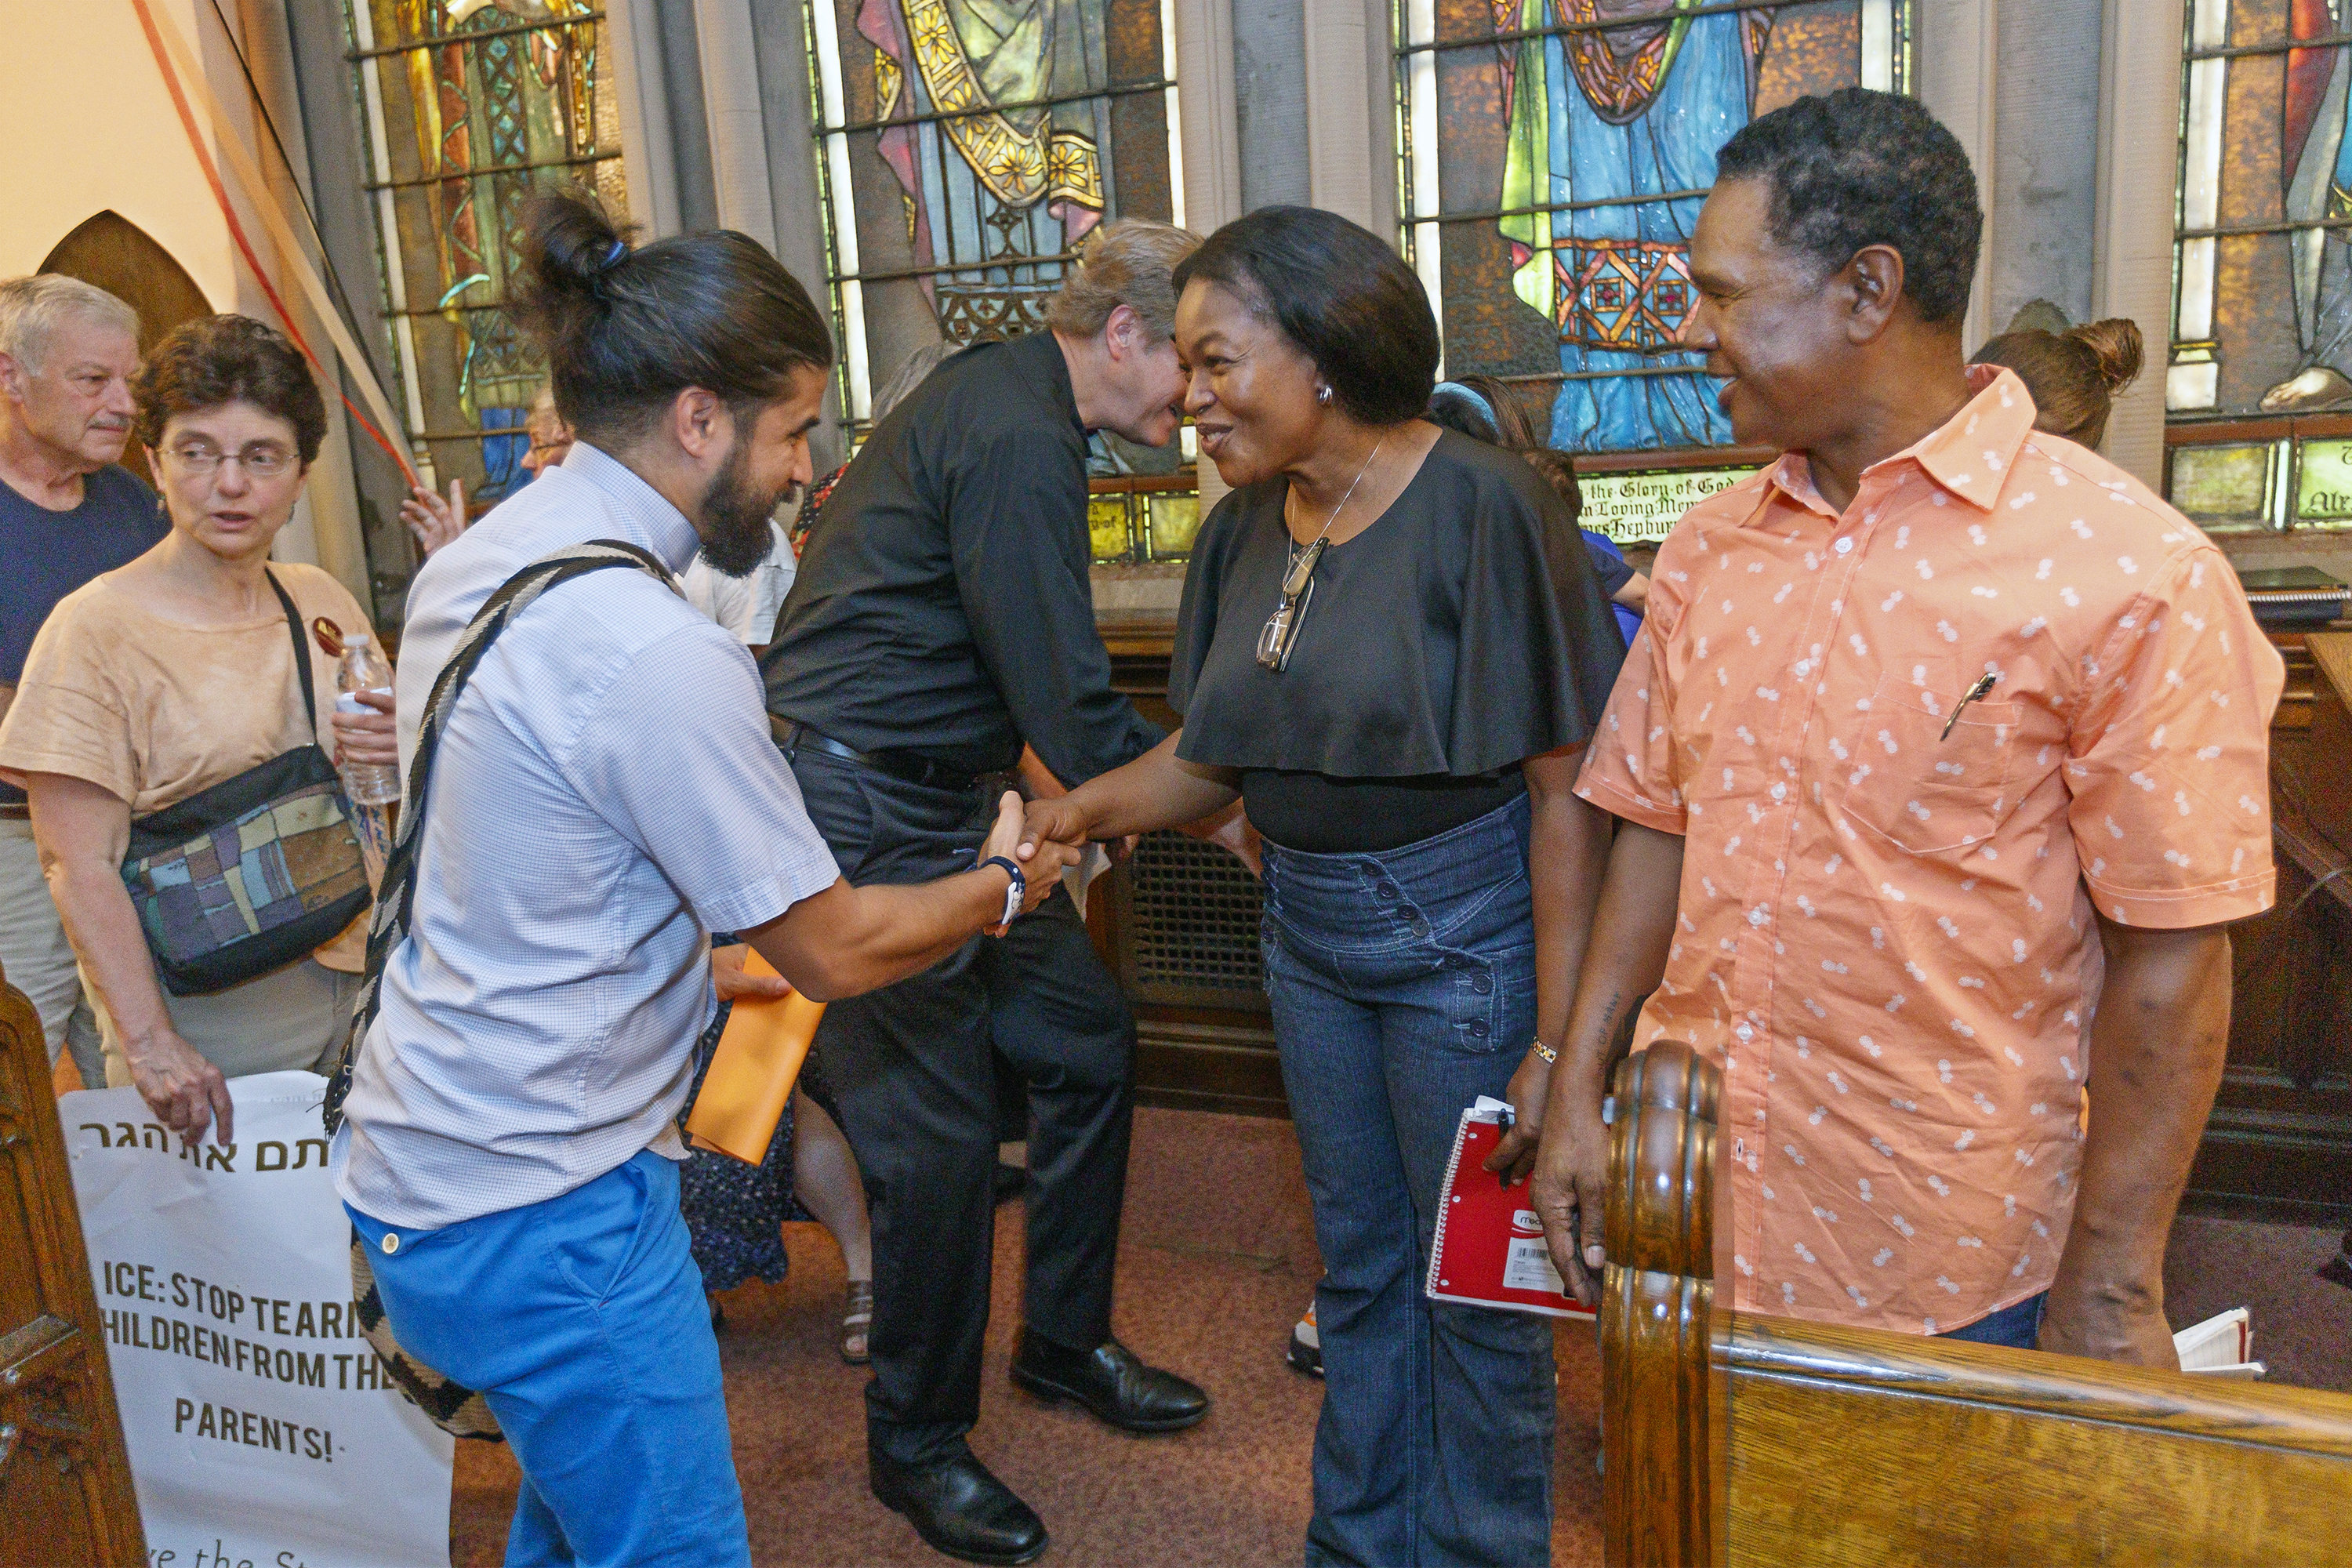 Oneita Thompson, center, and her husband Clive Thompson, right, originally from Jamaica, are greeted by well-wishers in the First United Methodist Church of Germantown, on September 5 as part of a welcoming ceremony at the church for the two families who took sanctuary there.